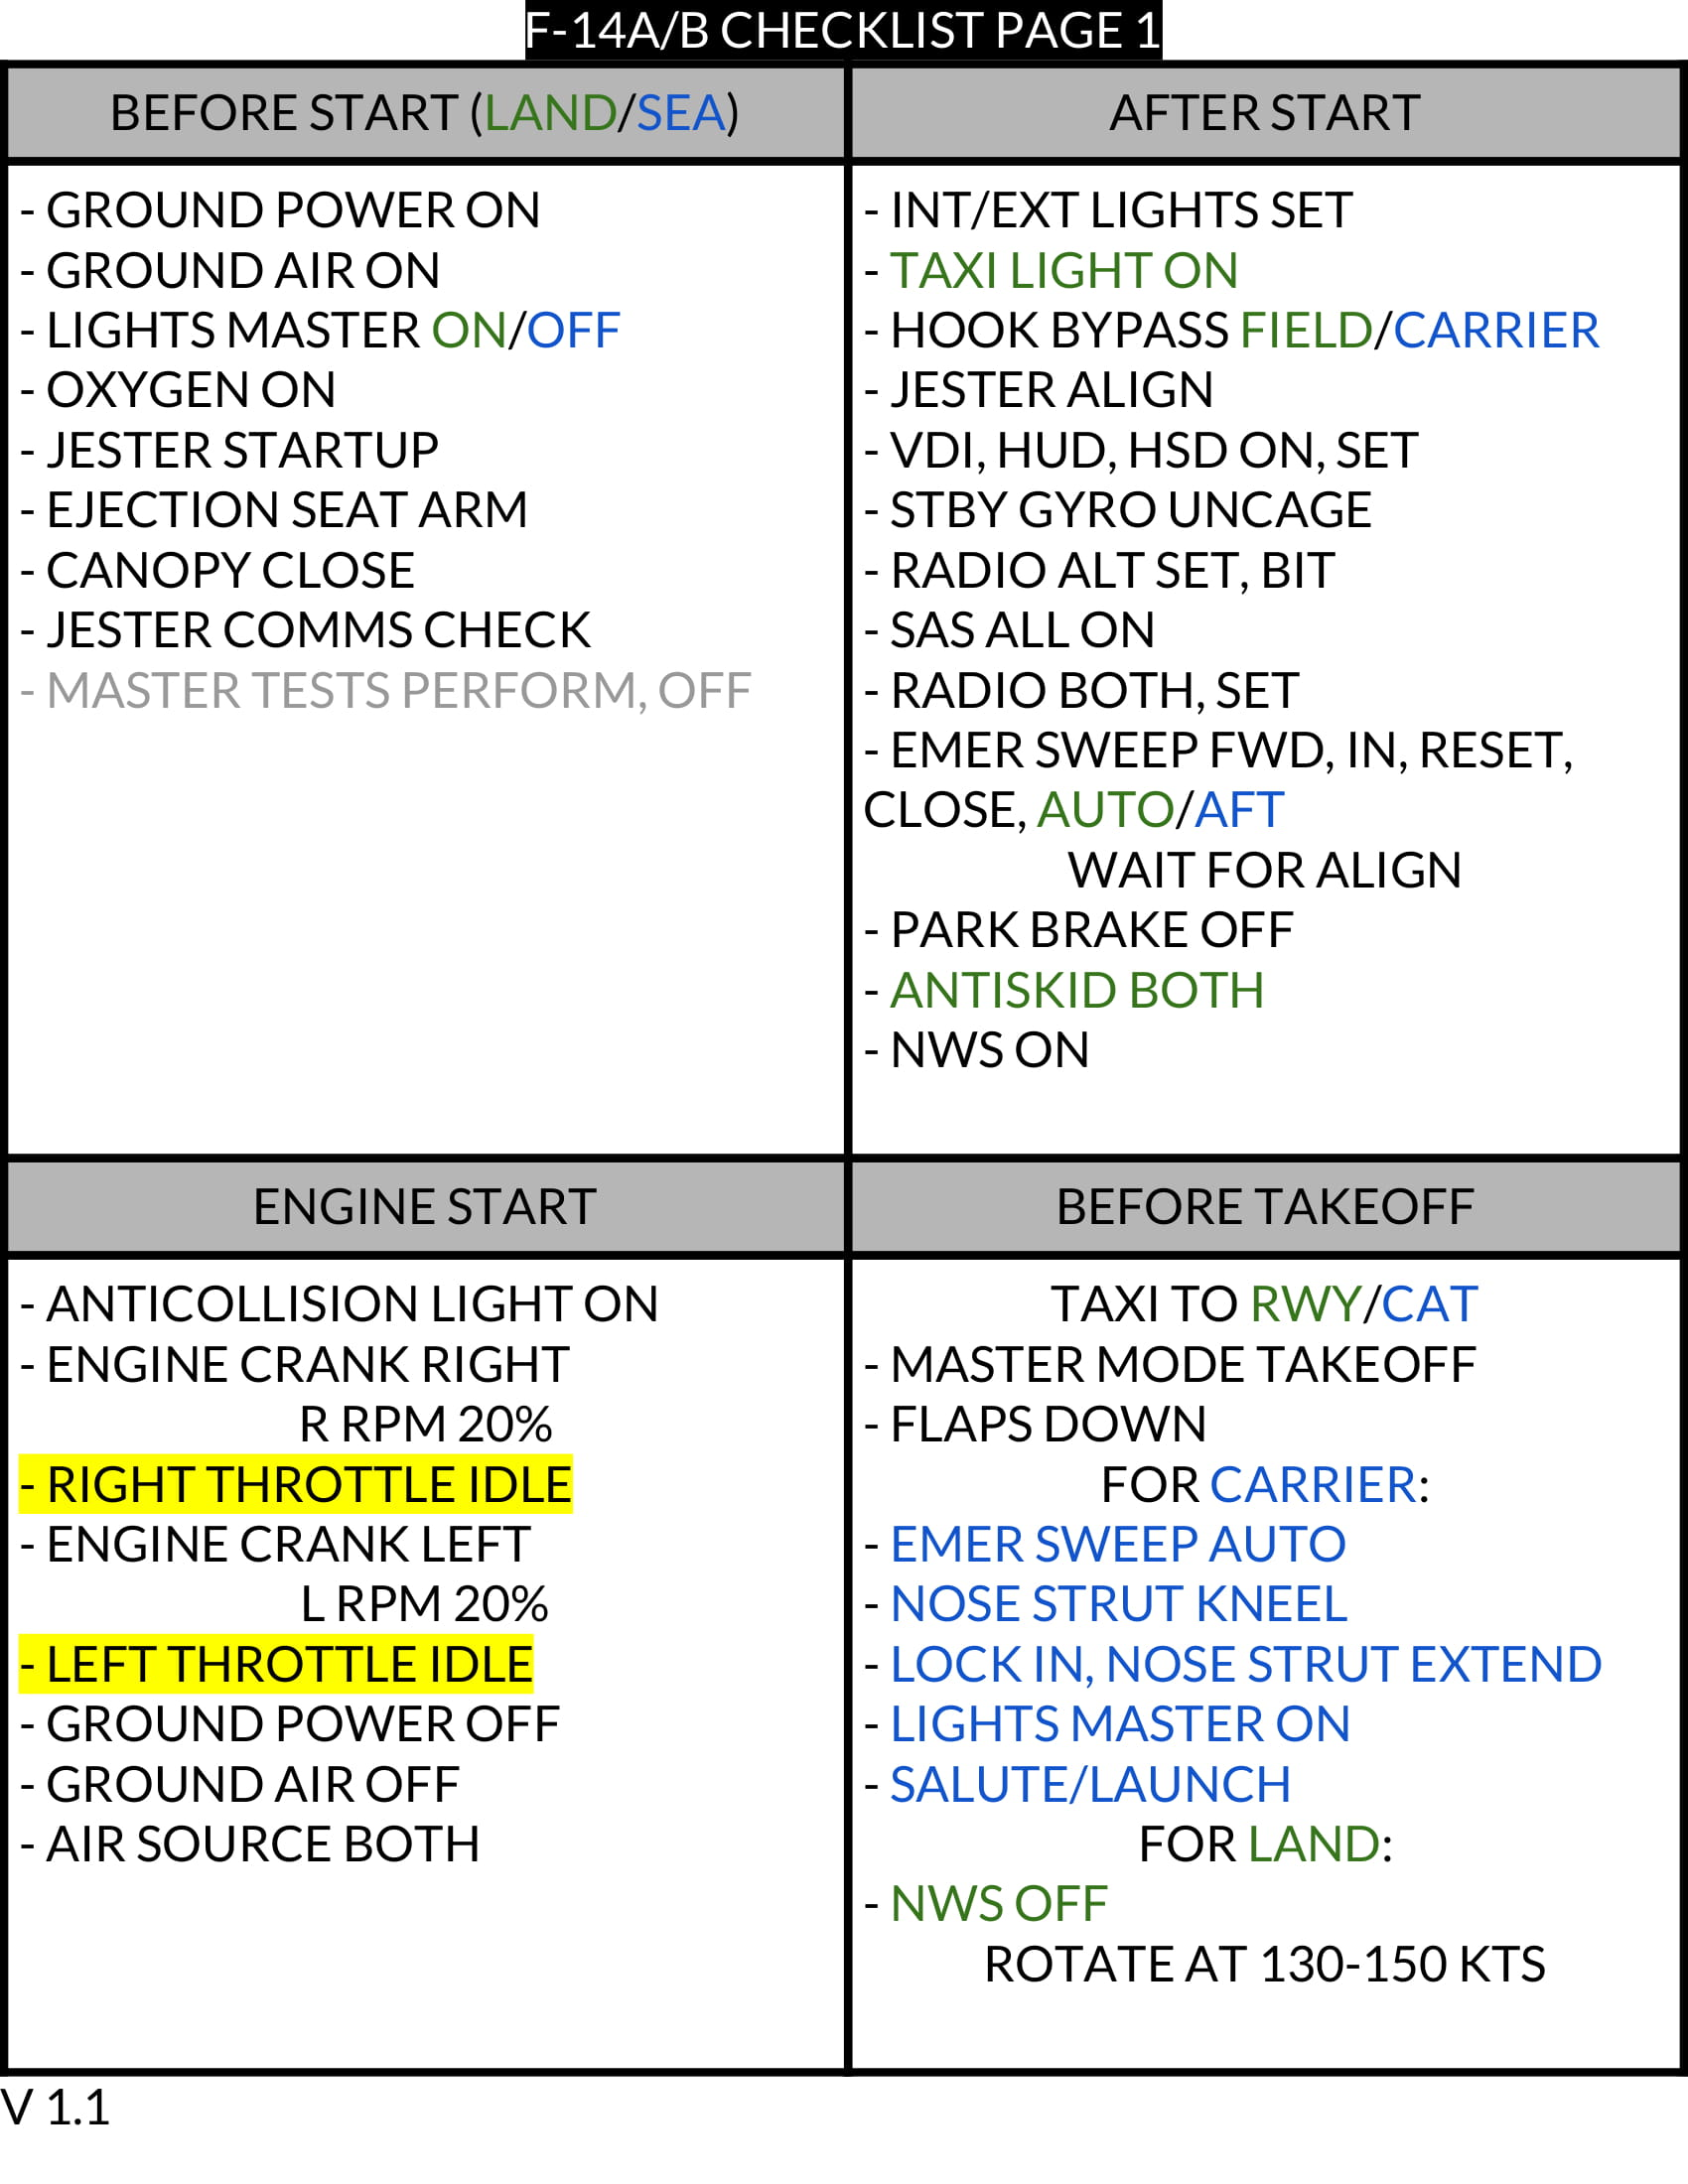 F-14B Enhanced Checklist v1.1